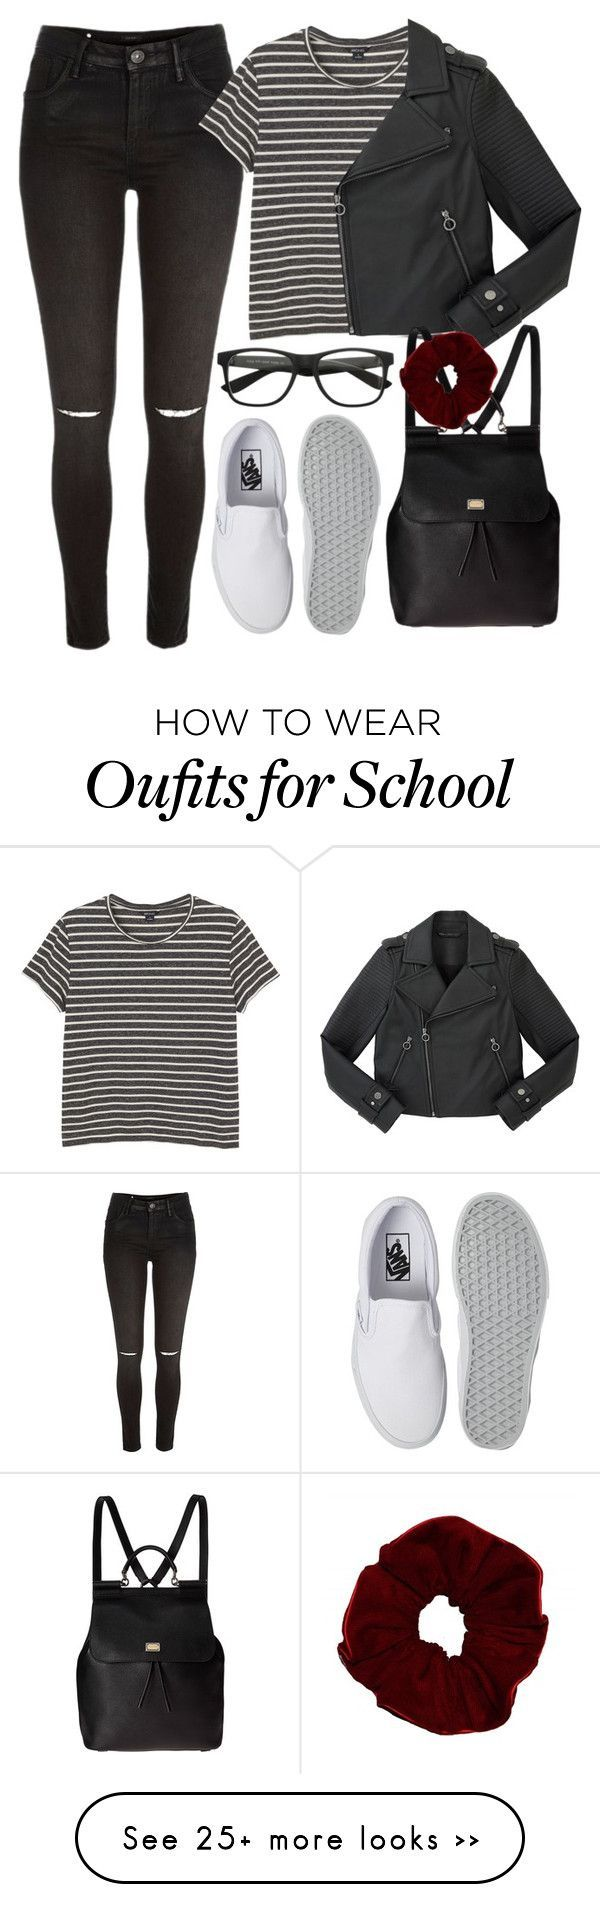 """""""Back to school outfit ♡"""" by rguelsah on Polyvore featuring River Island, Monki, Marc by Marc Jacobs, Vans and Dolce&Gabbana"""